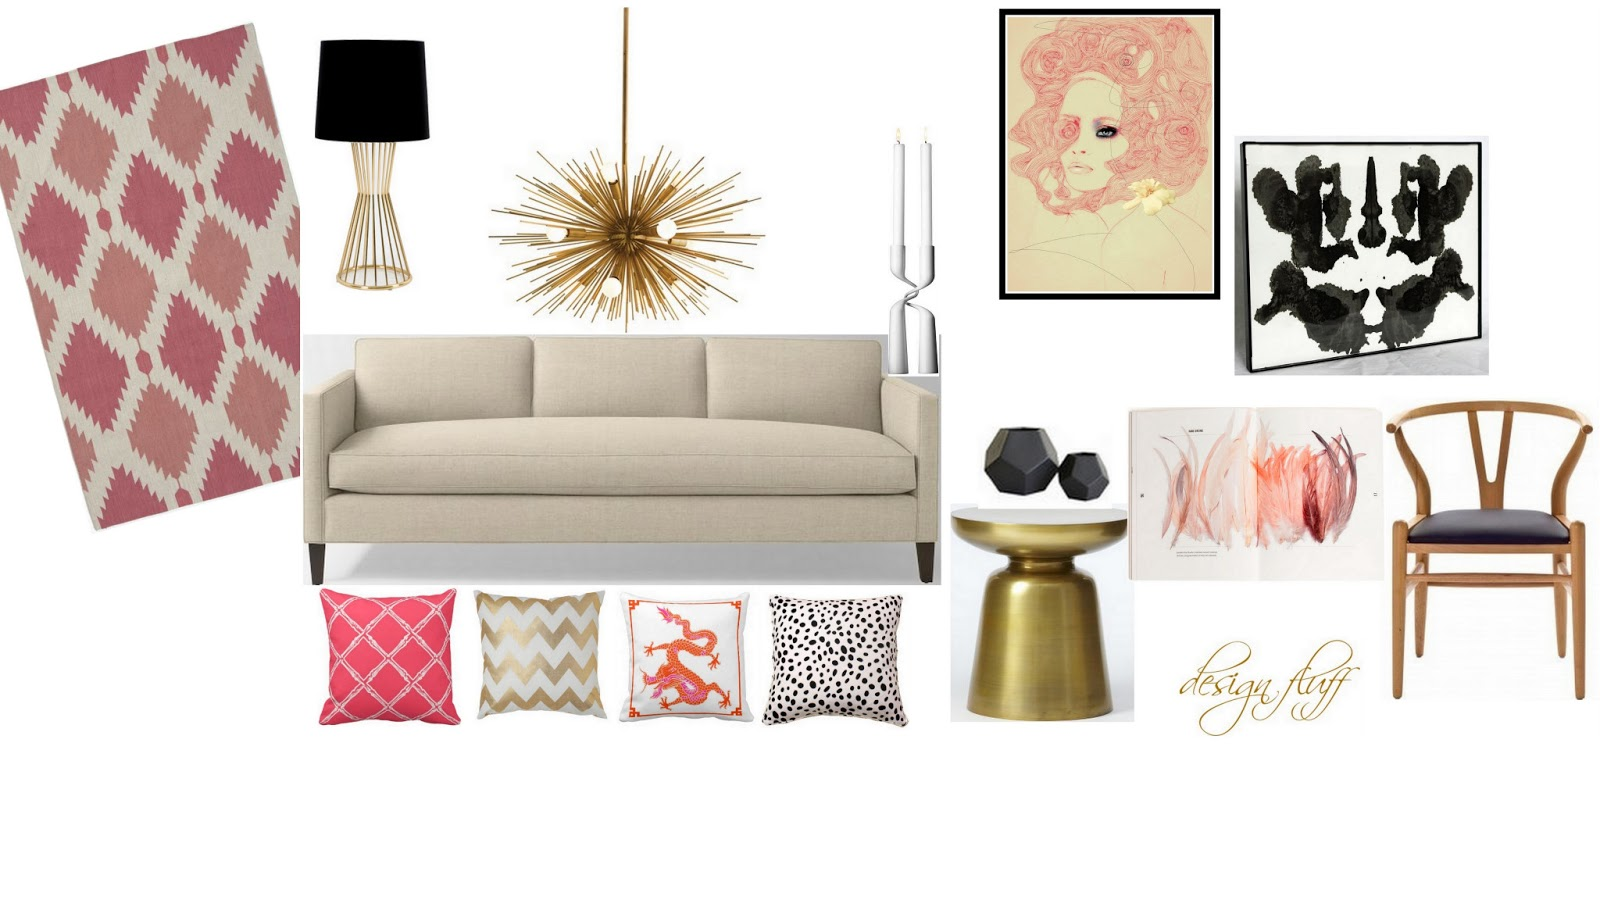 translating objects of inspiration to interior design